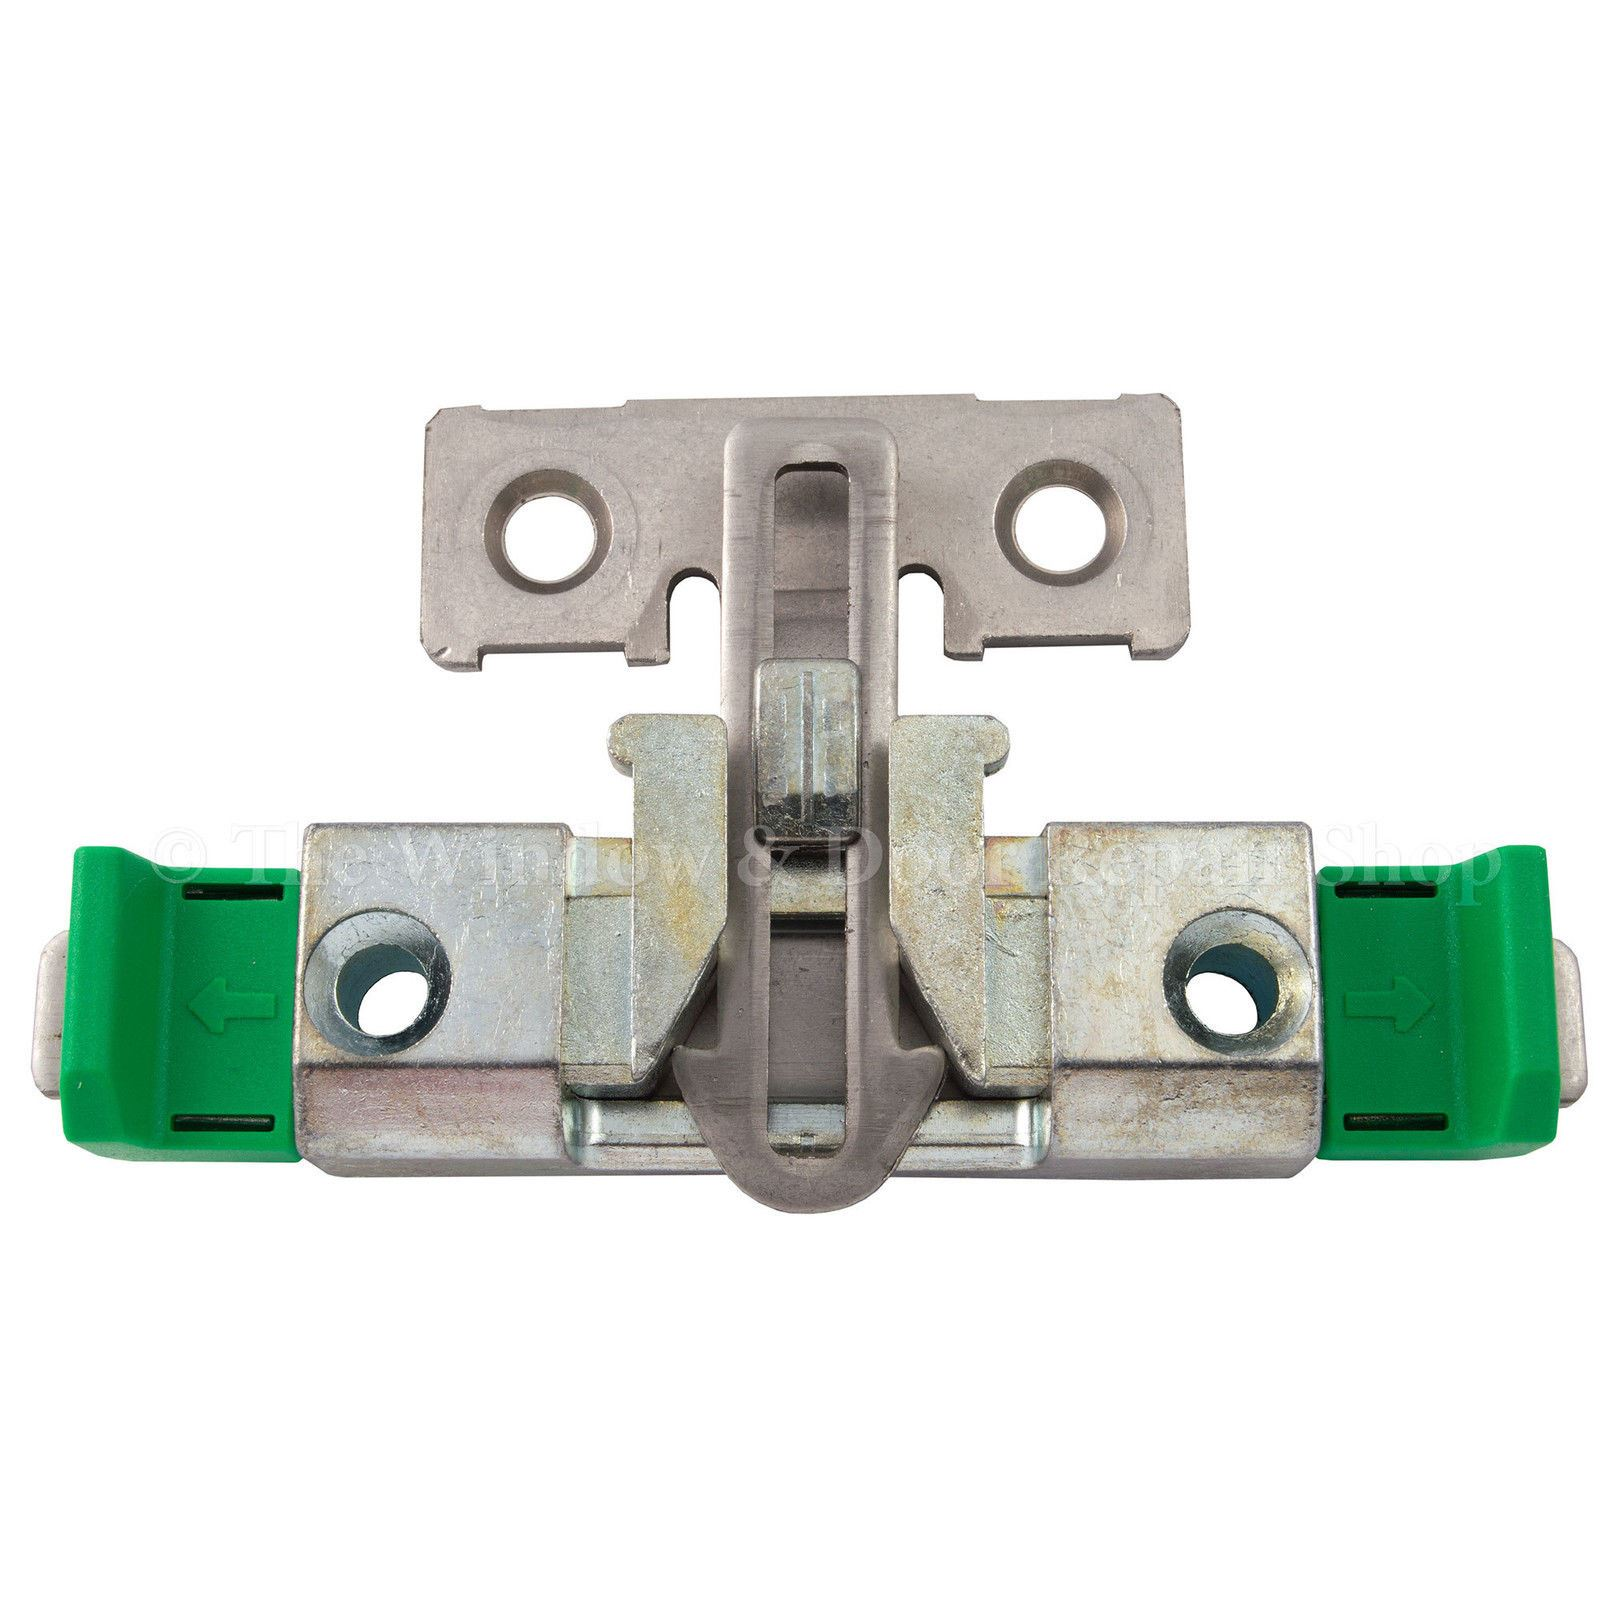 Boa Window Concealed Restrictor Upvc Casement Child Safety